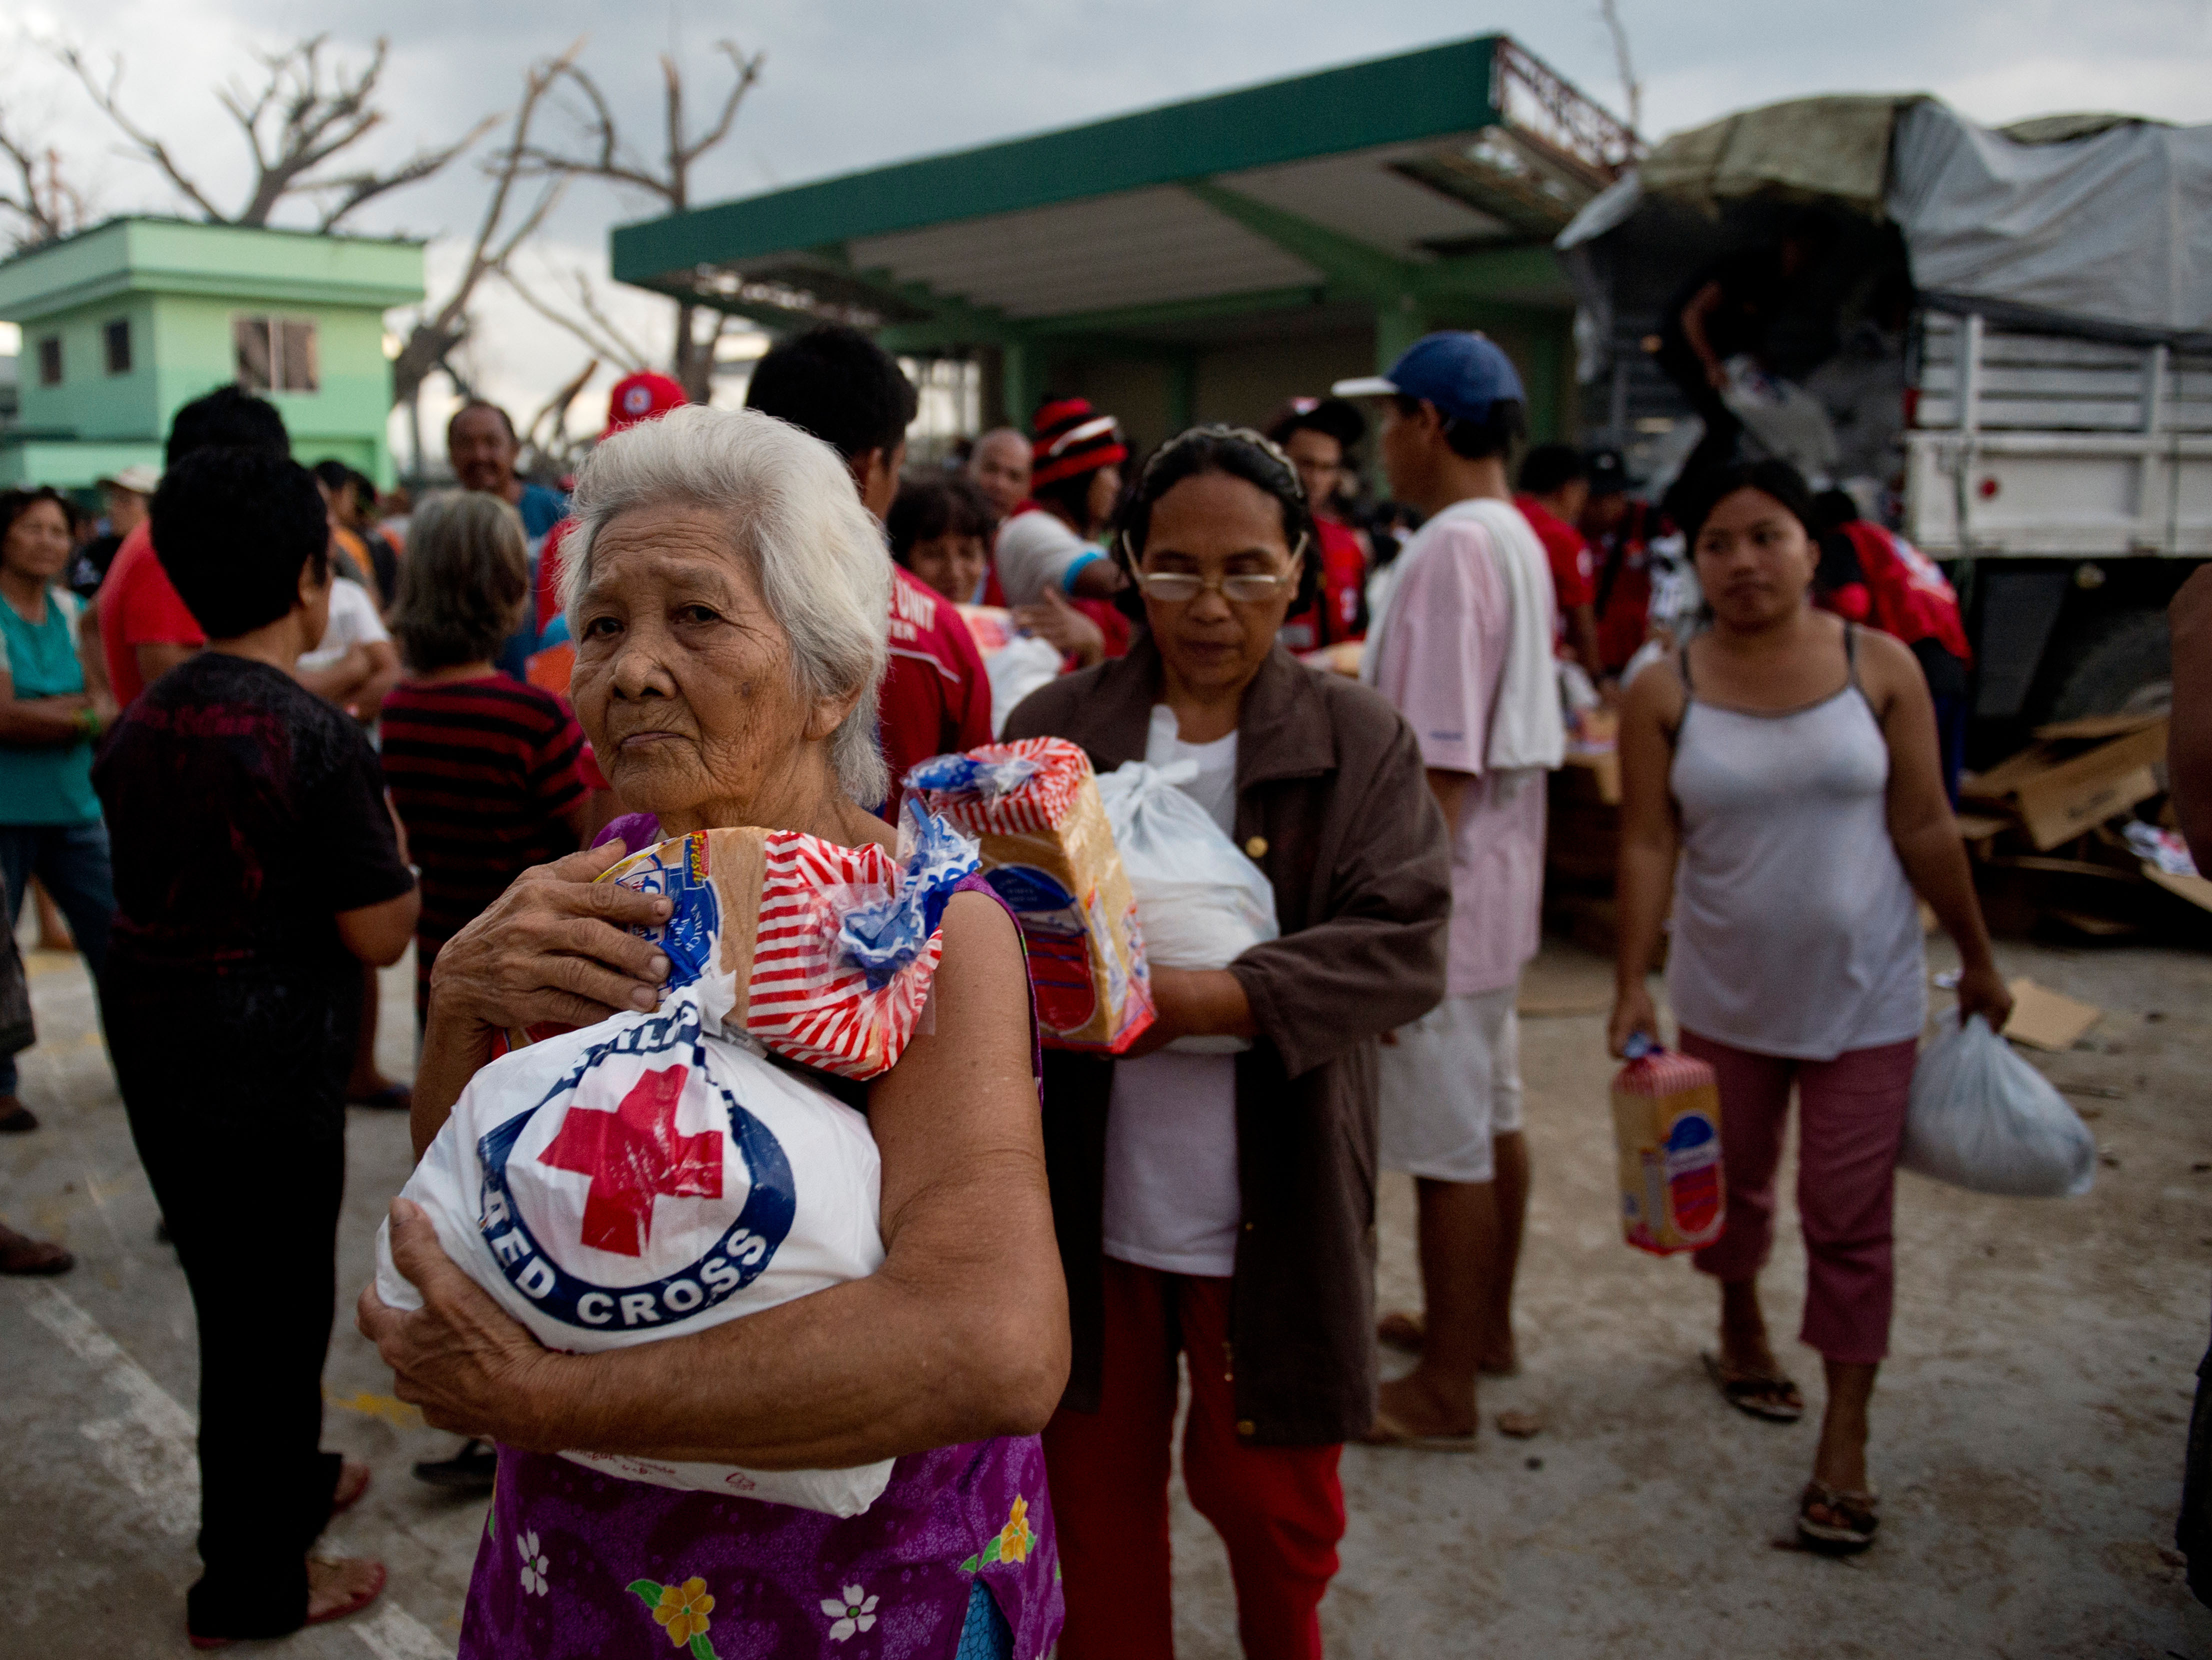 11 Days After Typhoon, Parts Of Philippines Yet To Be Helped